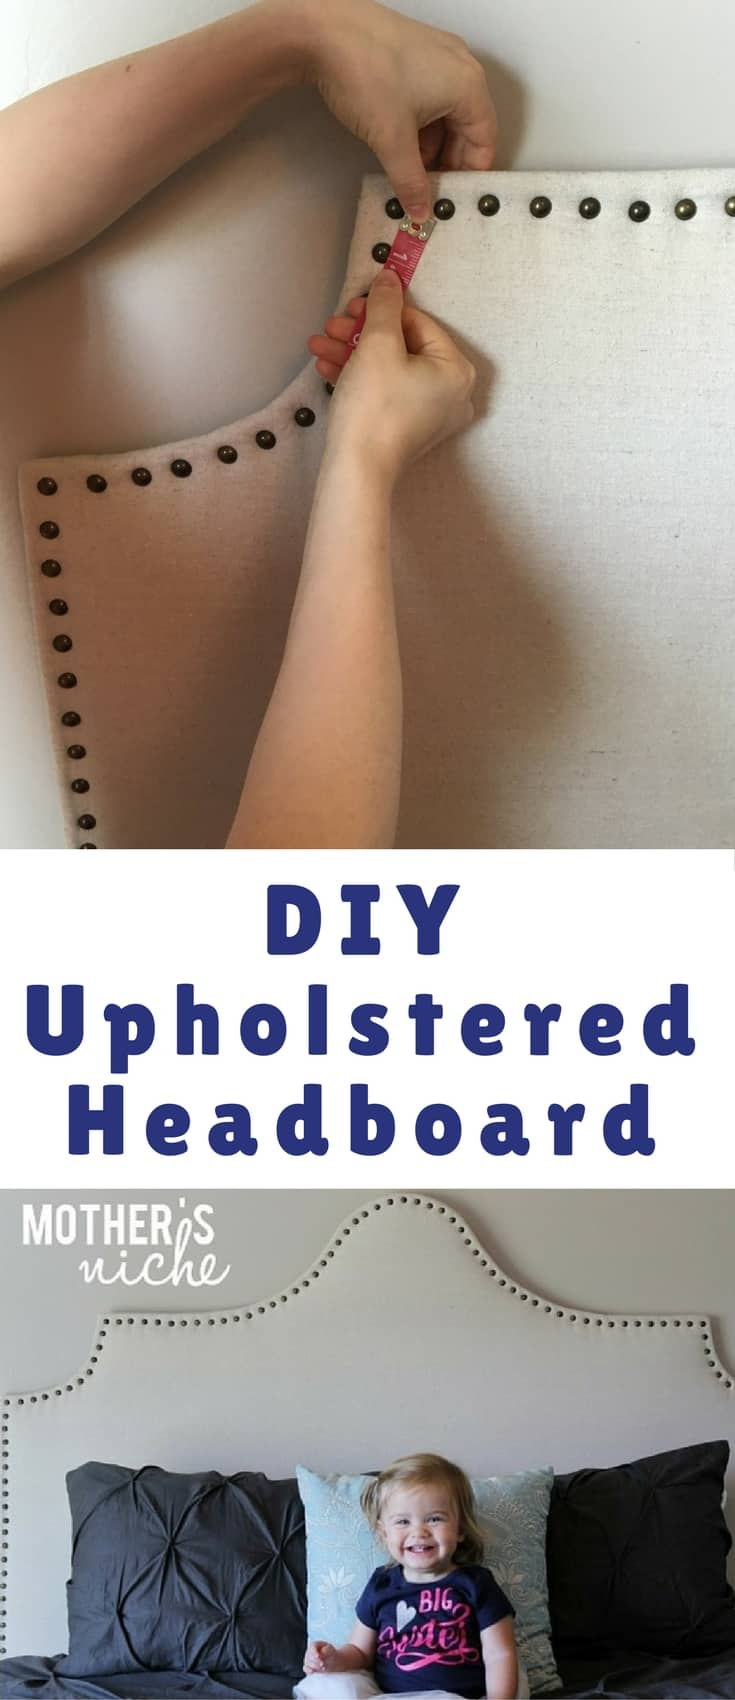 THERE I WAS, ON PINTEREST, PINNING IMAGE AFTER IMAGE OF BEAUTIFUL BEDROOMS. THAT'S WHEN I NOTICED THAT THEY ALL HAD ONE THING IN COMMON– A GORGEOUS UPHOLSTERED HEADBOARD WITH NAIL HEAD TRIM. So, I decided I wanted to make my own to save costs.